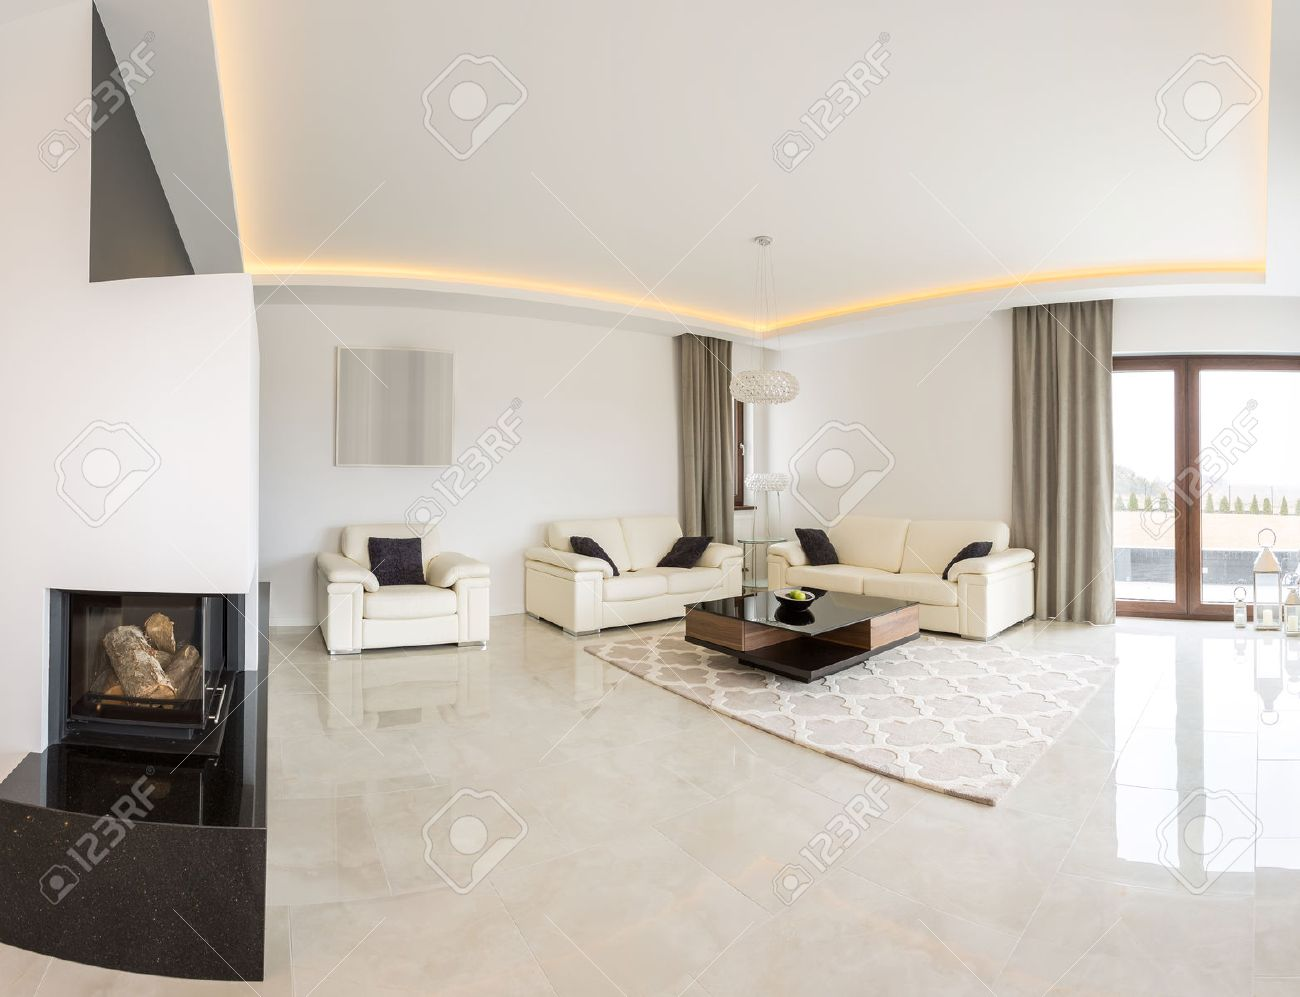 Spacious Bright Living Room With Fireplace And Marble Floor Stock ...